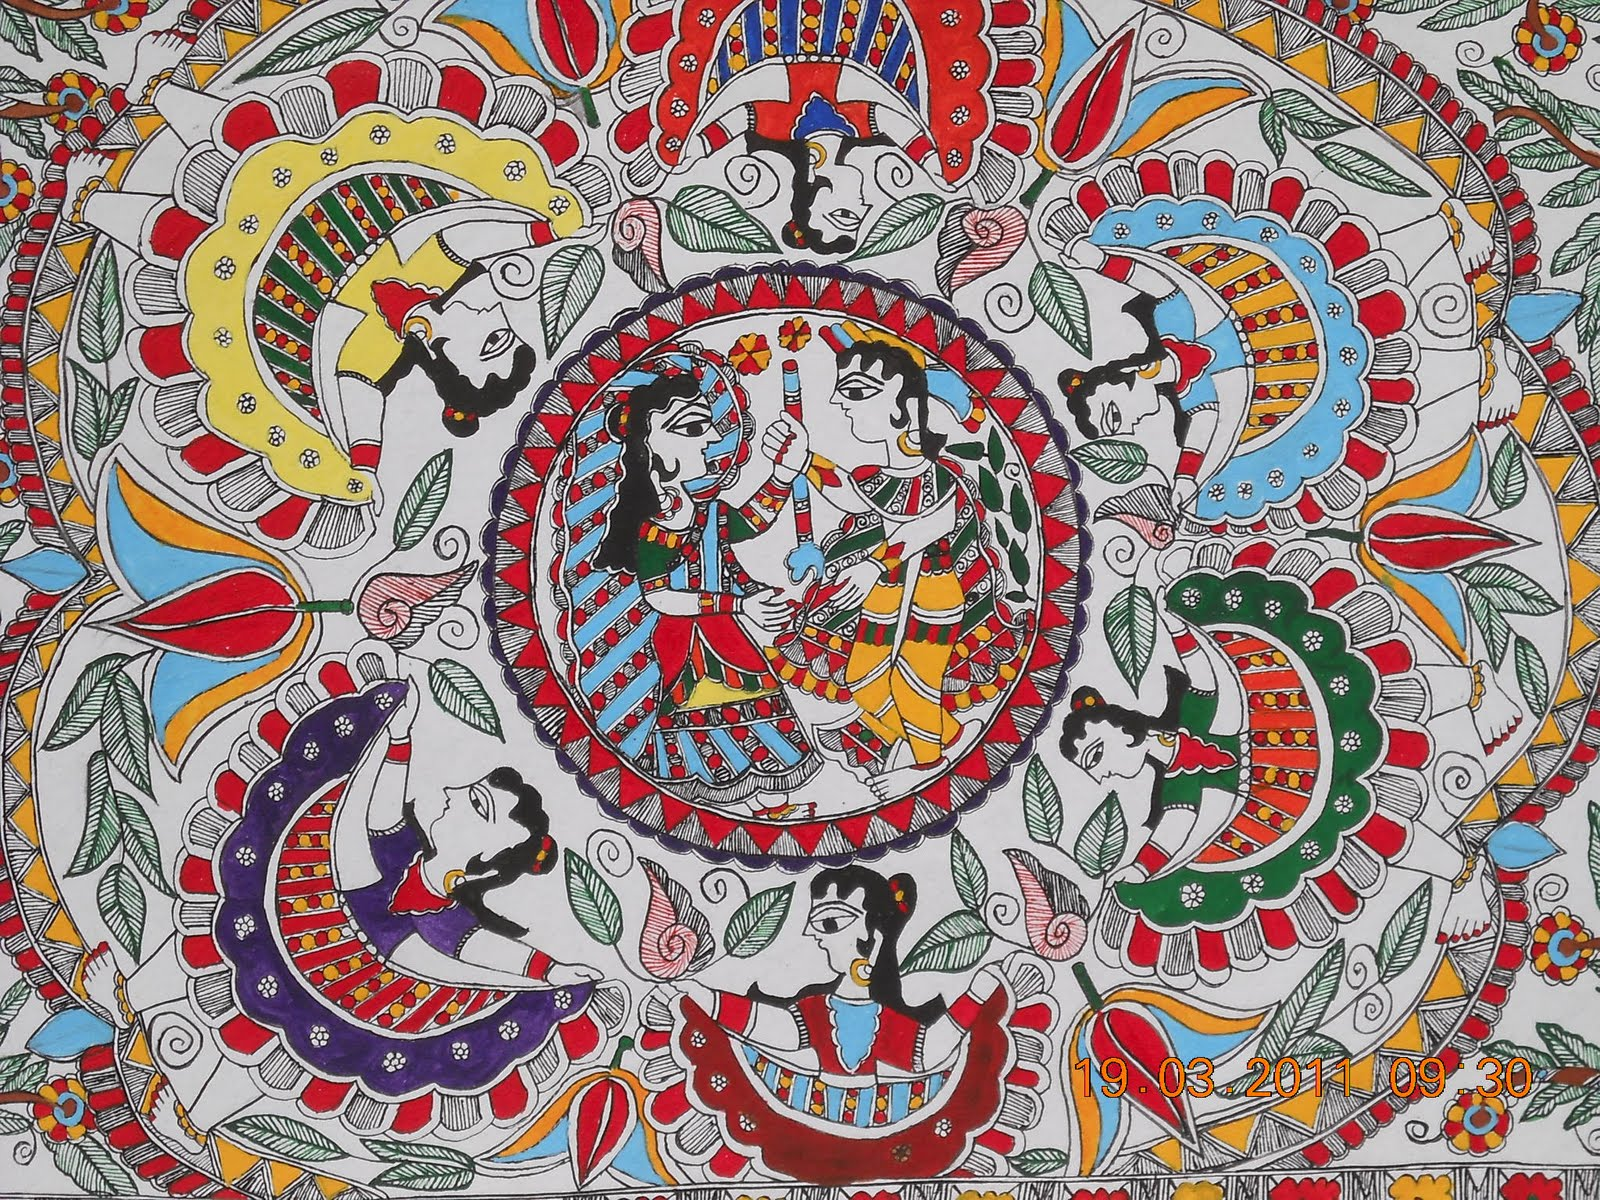 madhubani paintings The art of madhubani painting, is the traditional style developed in the mithila region, in the villages around madhubani, bihar madhubani literally means a forest of honey.